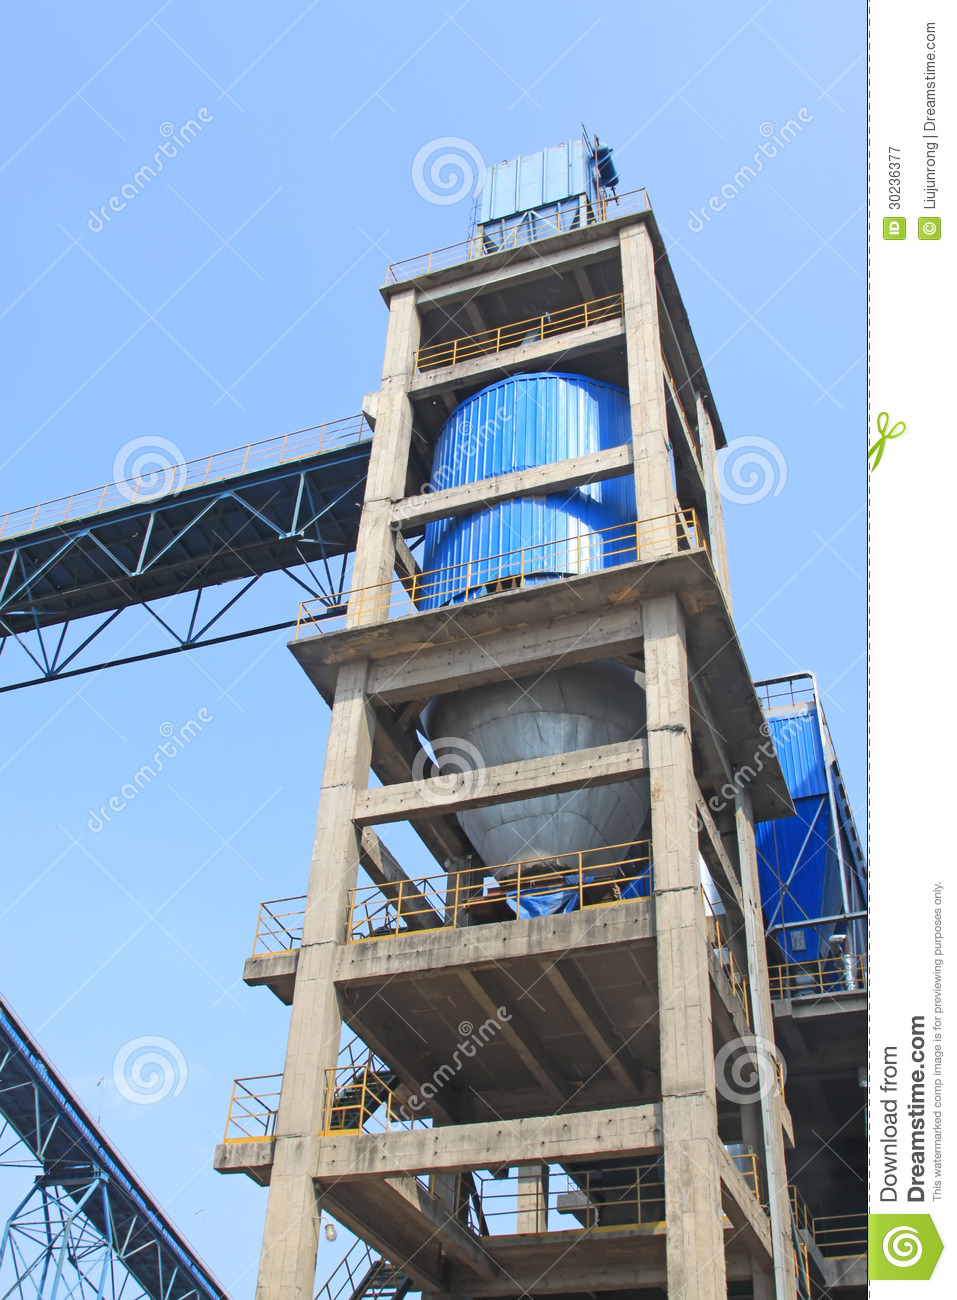 Mechanical Facilities In A Cement Factory Stock Image